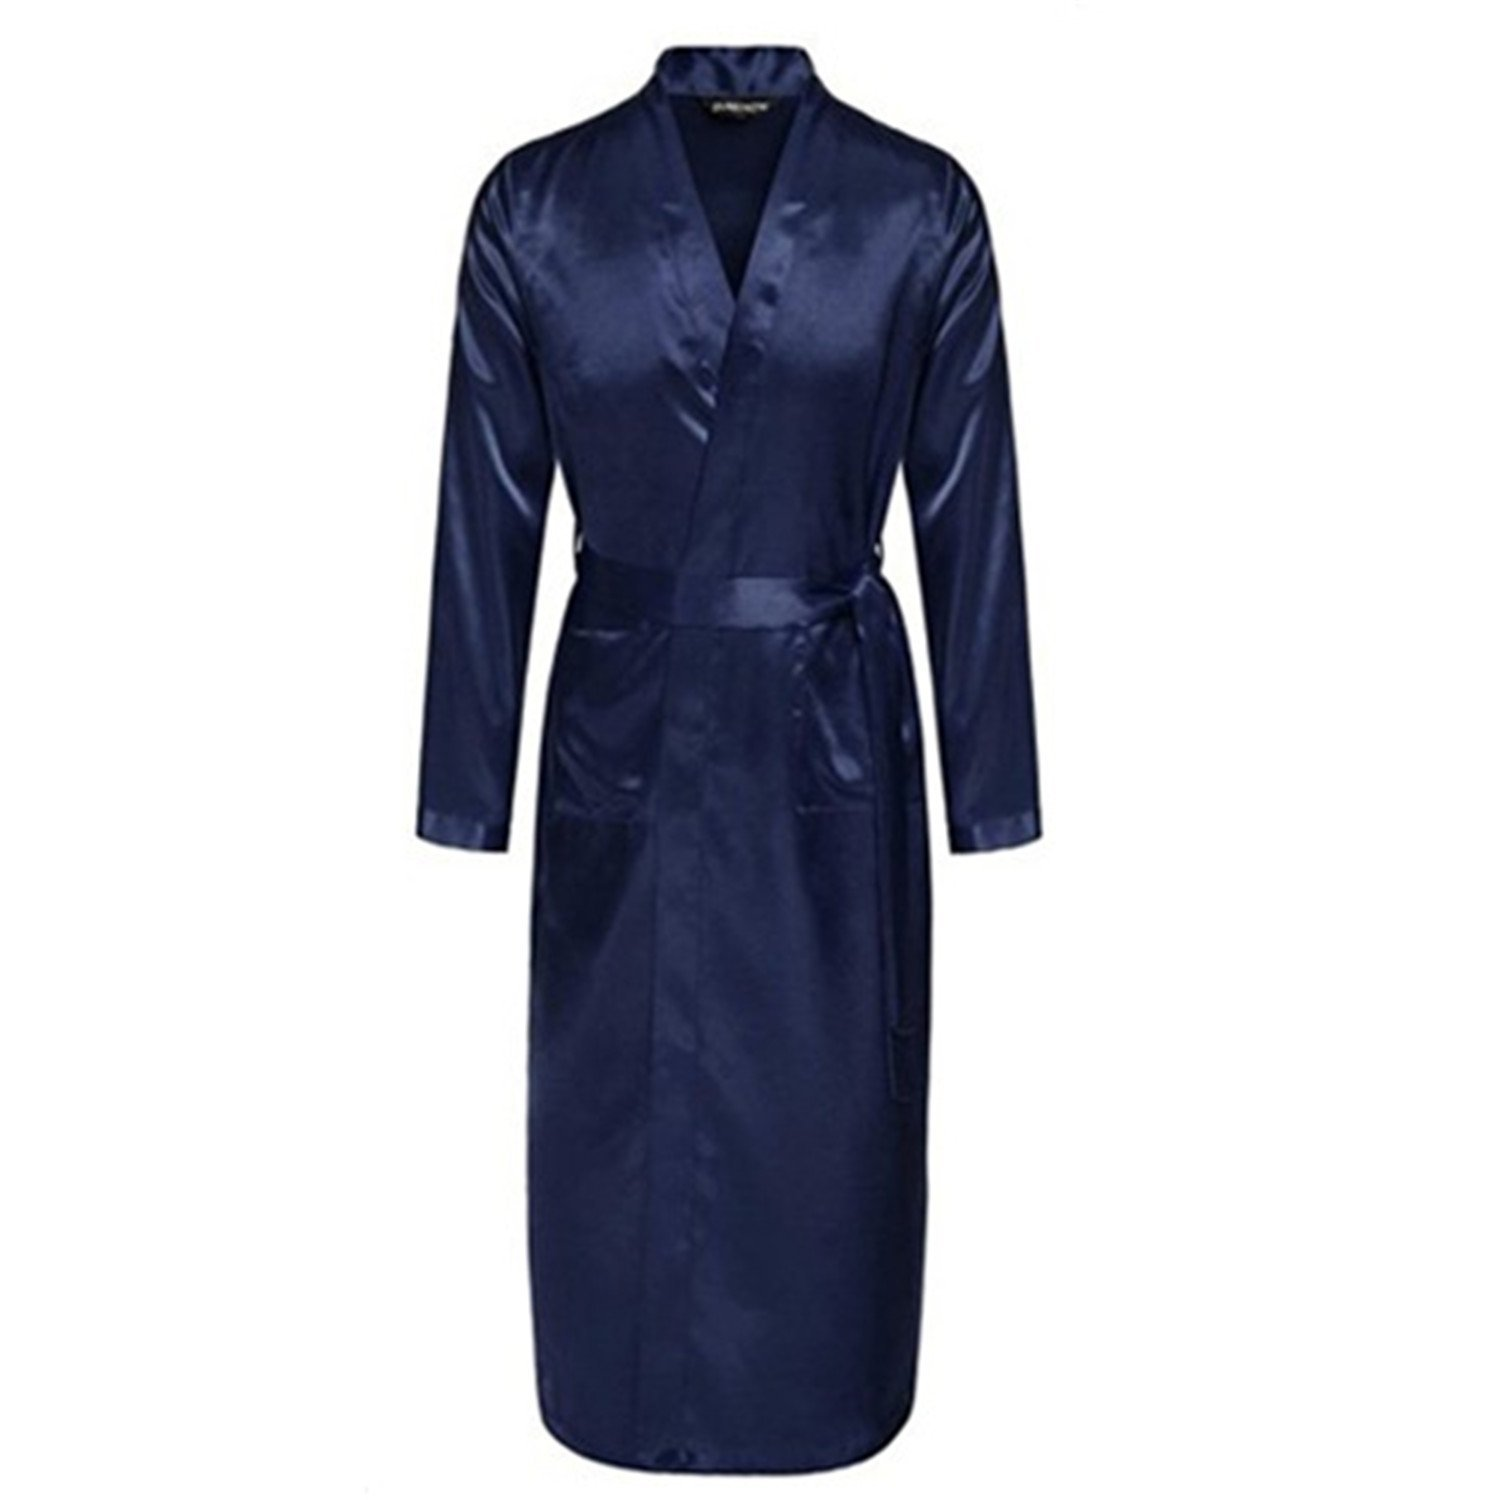 6e4c19e400b Get Quotations · Orcan Bluce Black Men s Satin Rayon Robe Gown Solid Color  Kimono Bath Gown Lounge Nightgown Sleepwear